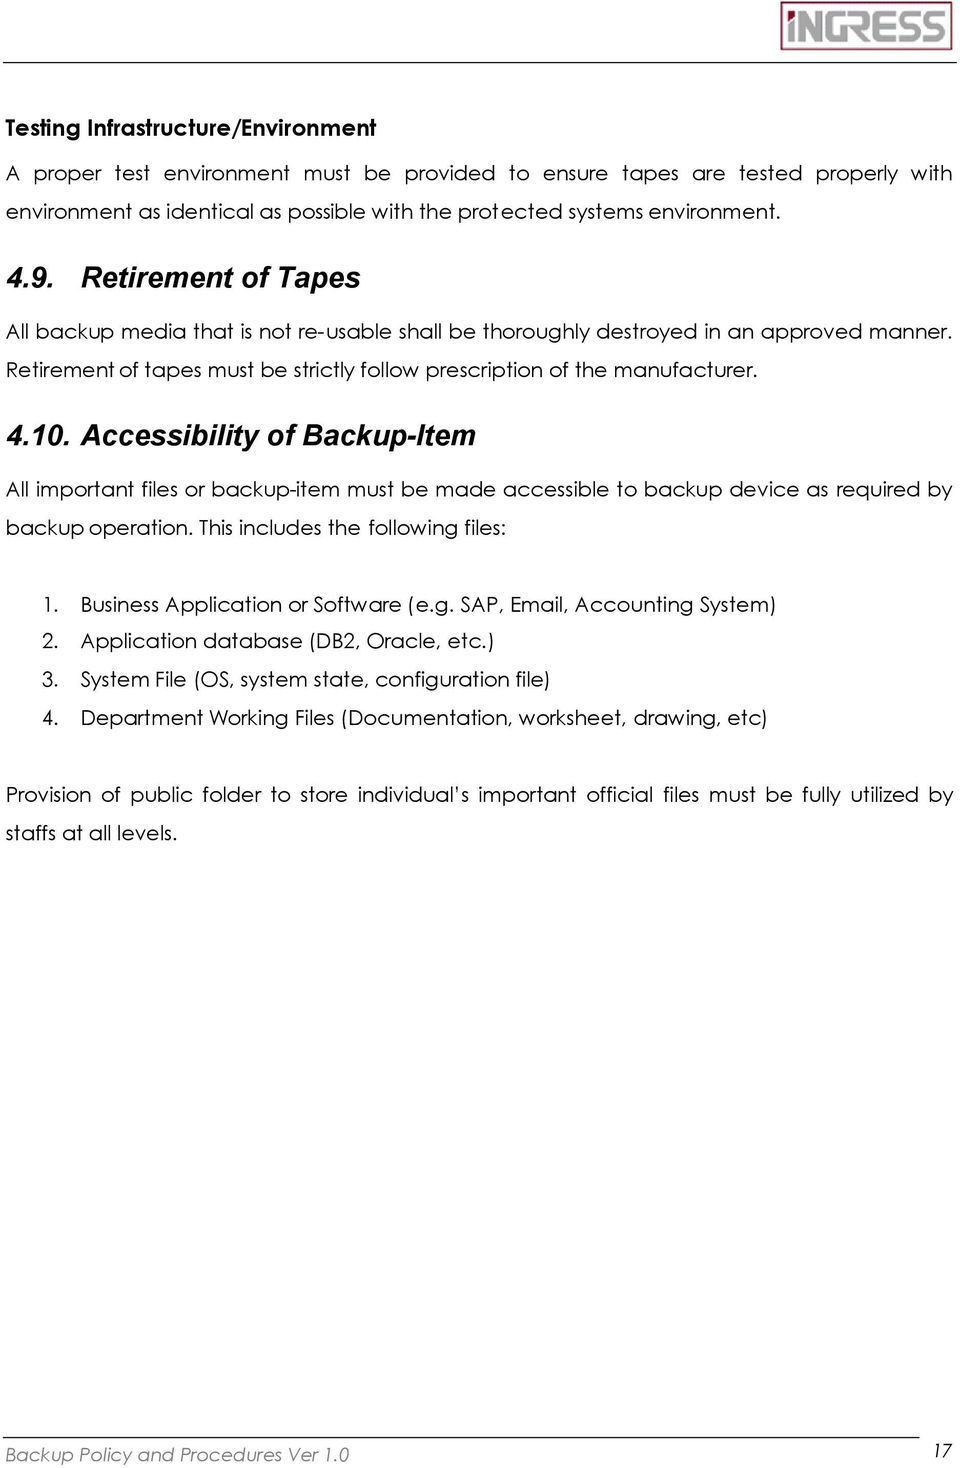 Accessibility of -Item All important files or backup-item must be made accessible to backup device as required by backup operation. This includes the following files: 1.